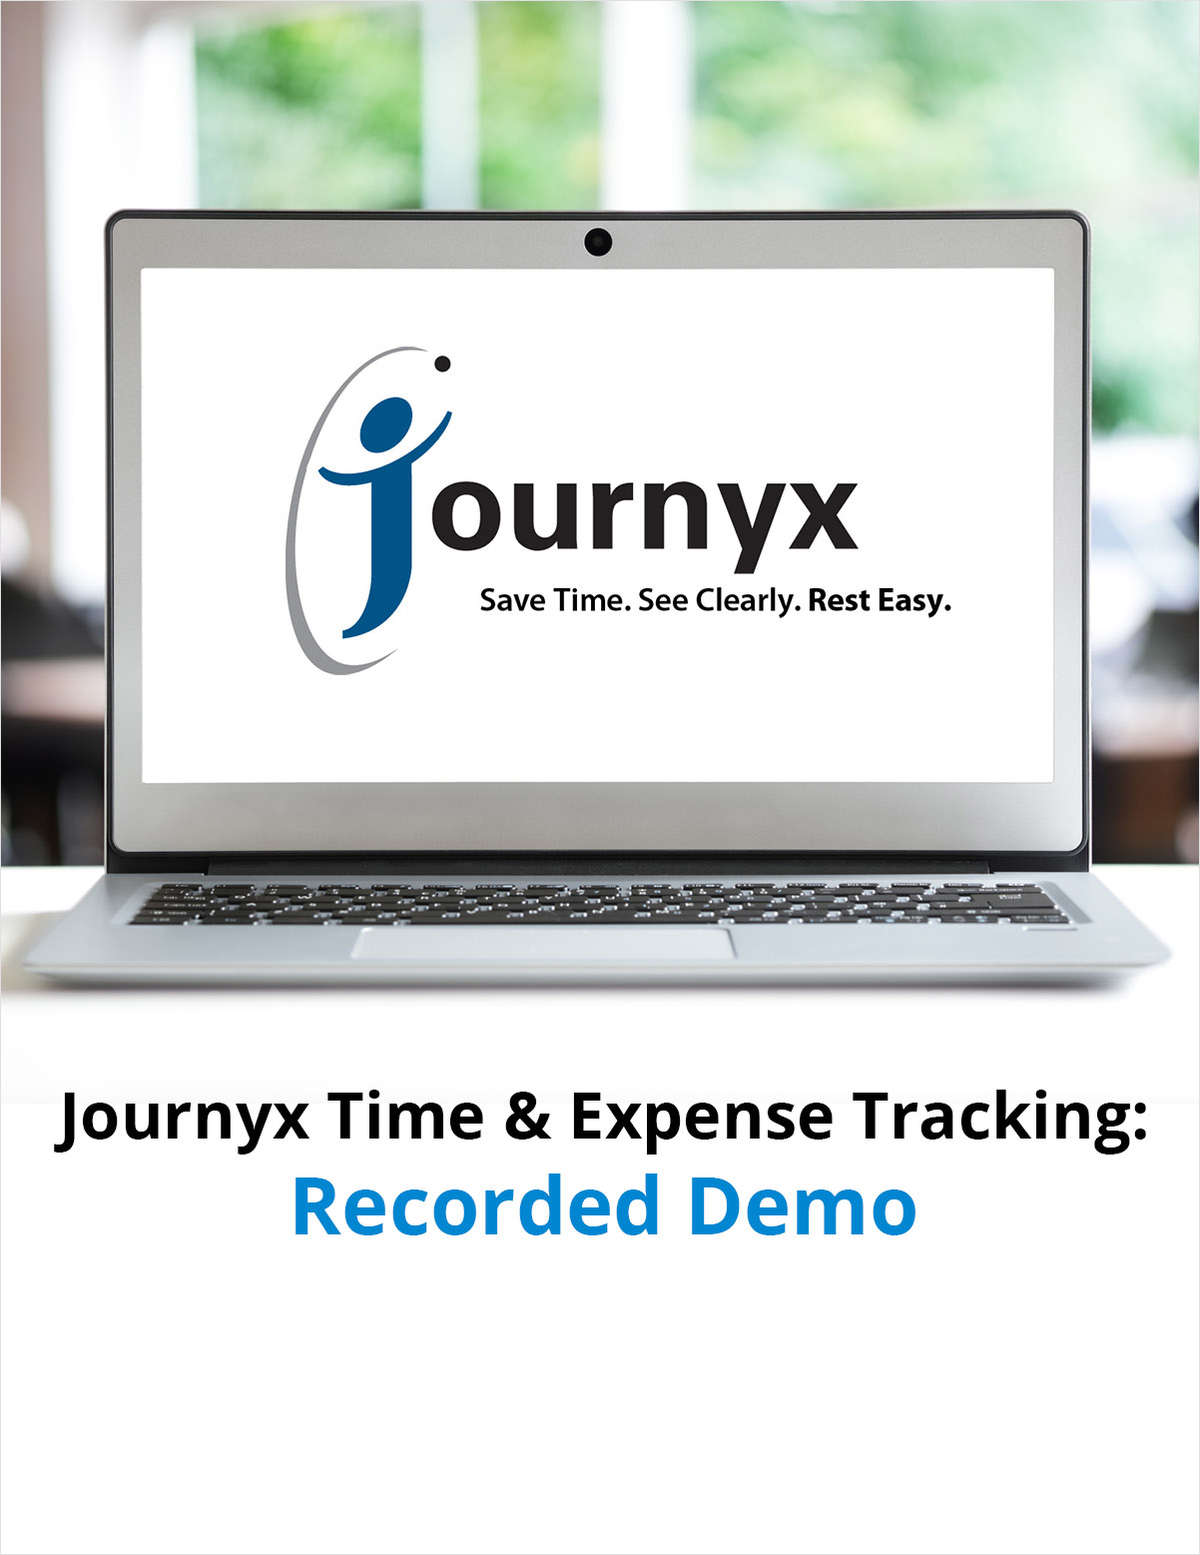 Journyx Time & Expense Tracking: Demo Recording